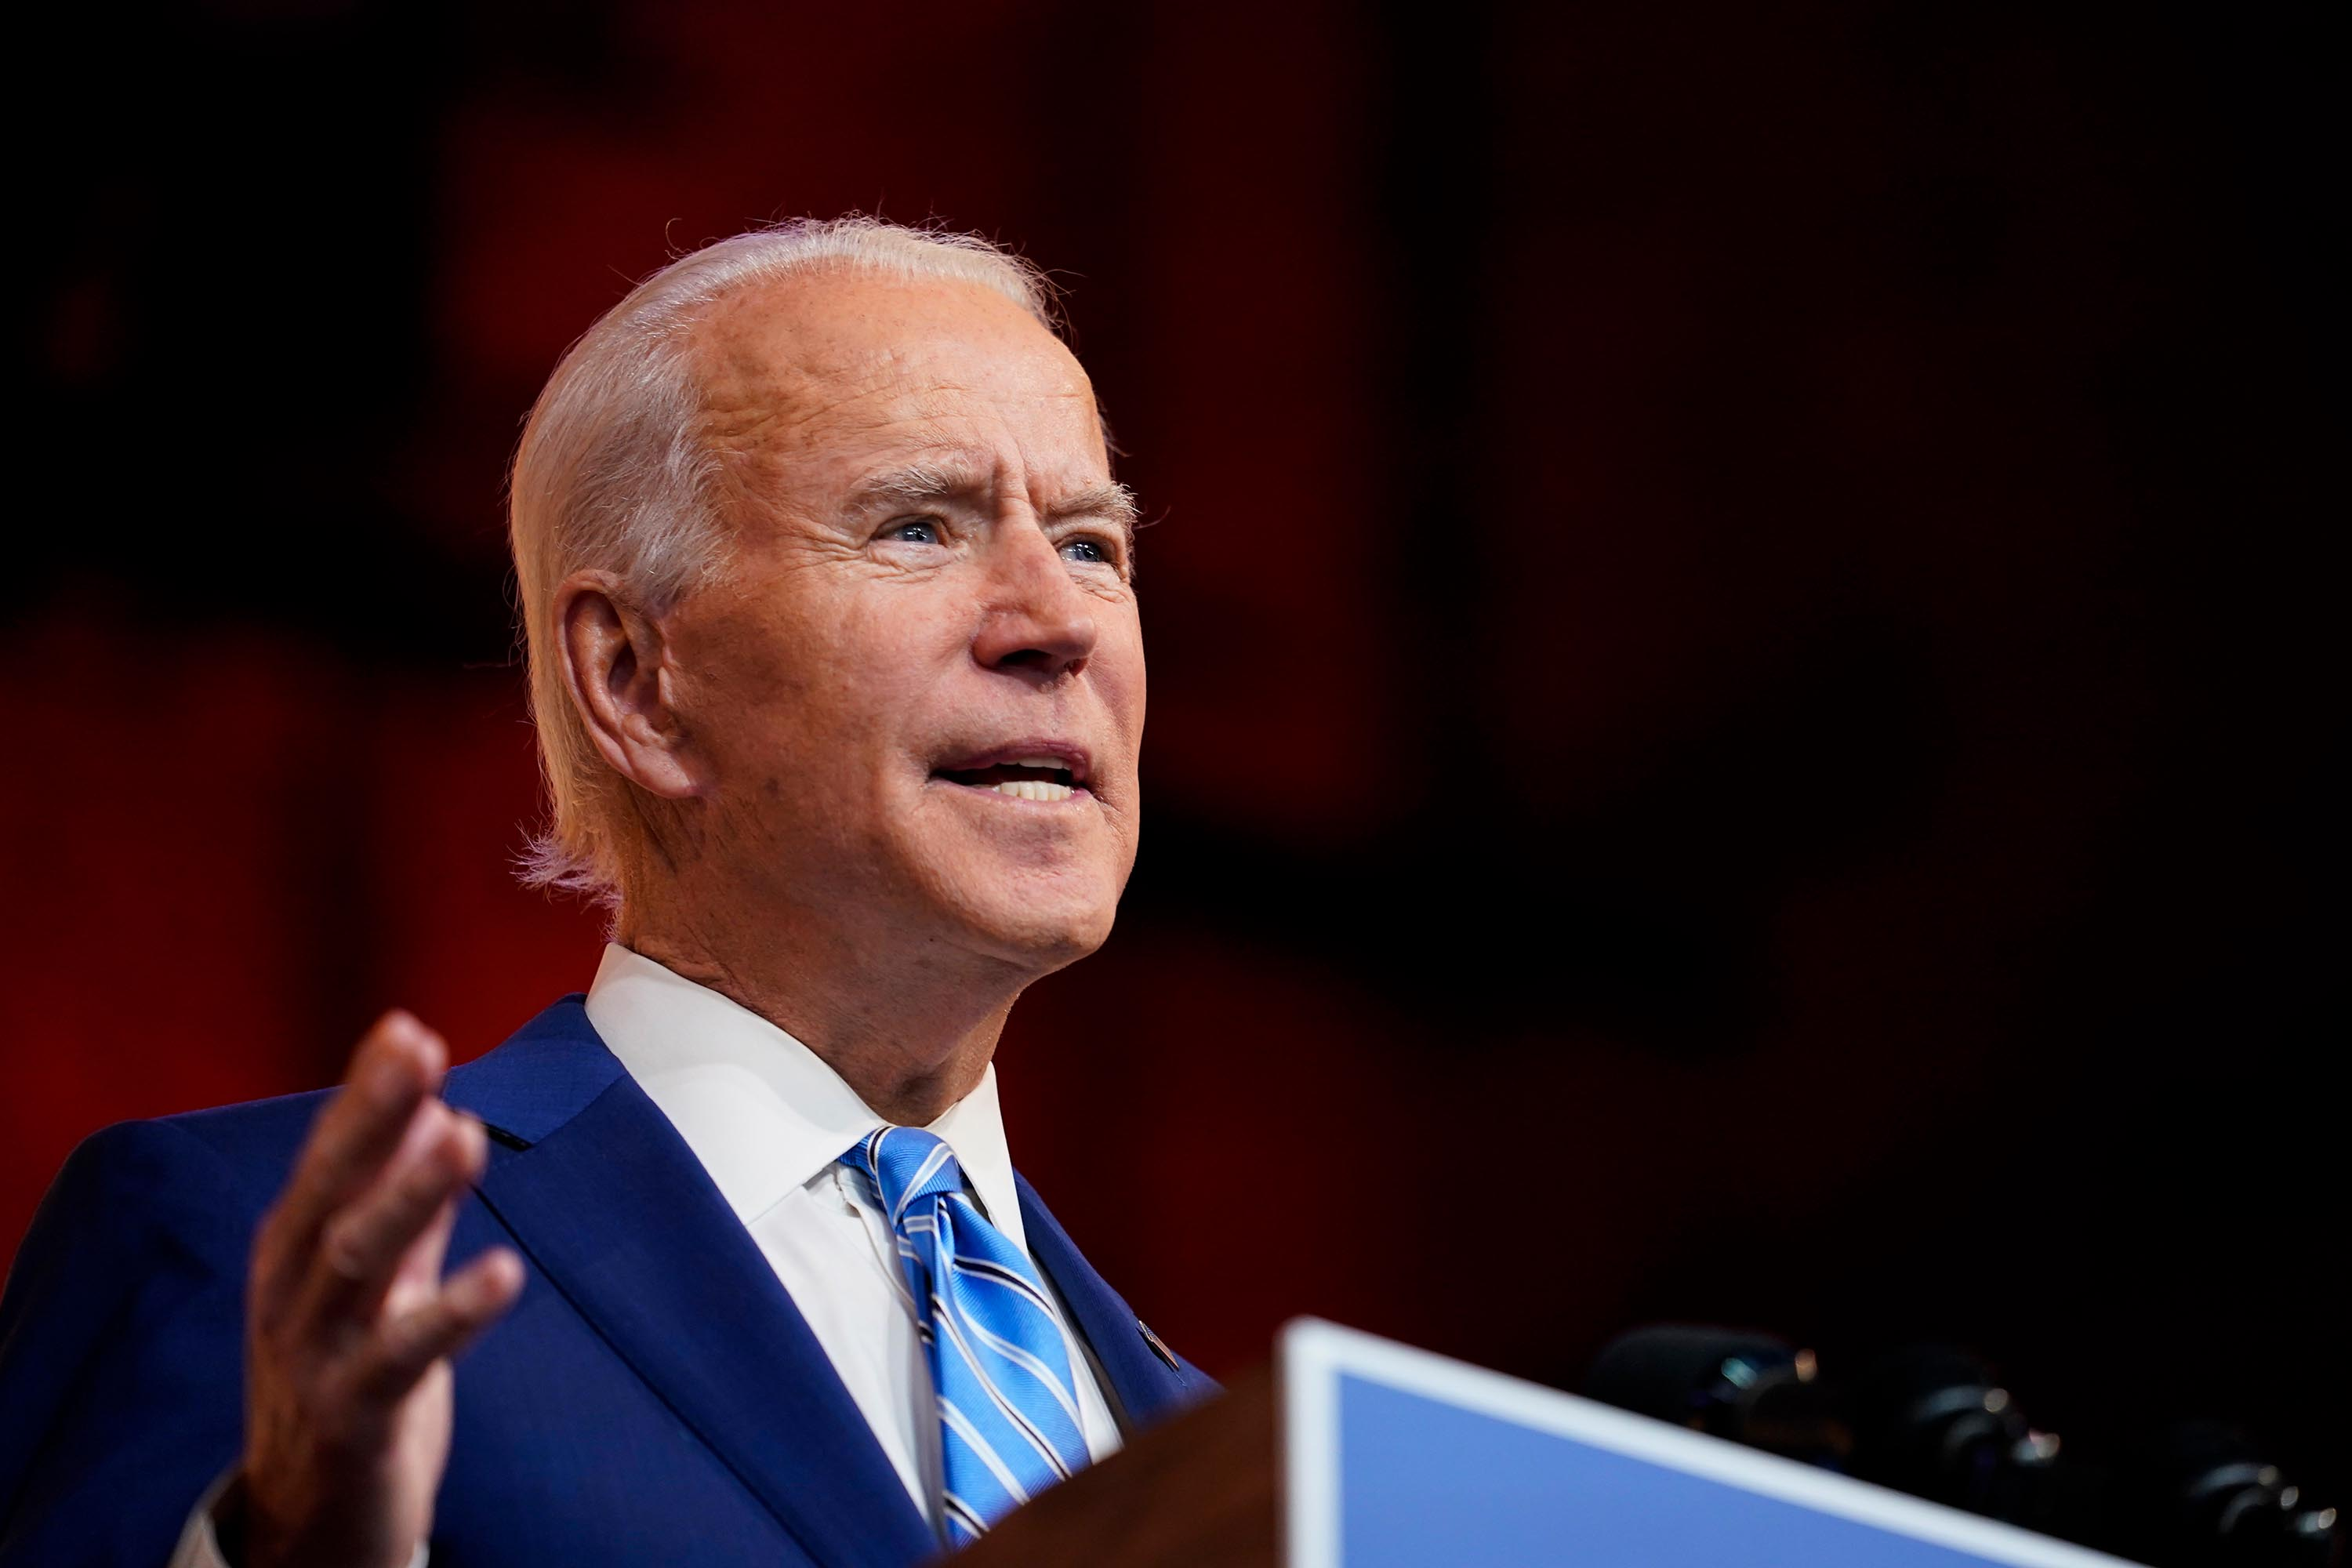 Wisconsin governor certifies state's electoral votes for Biden